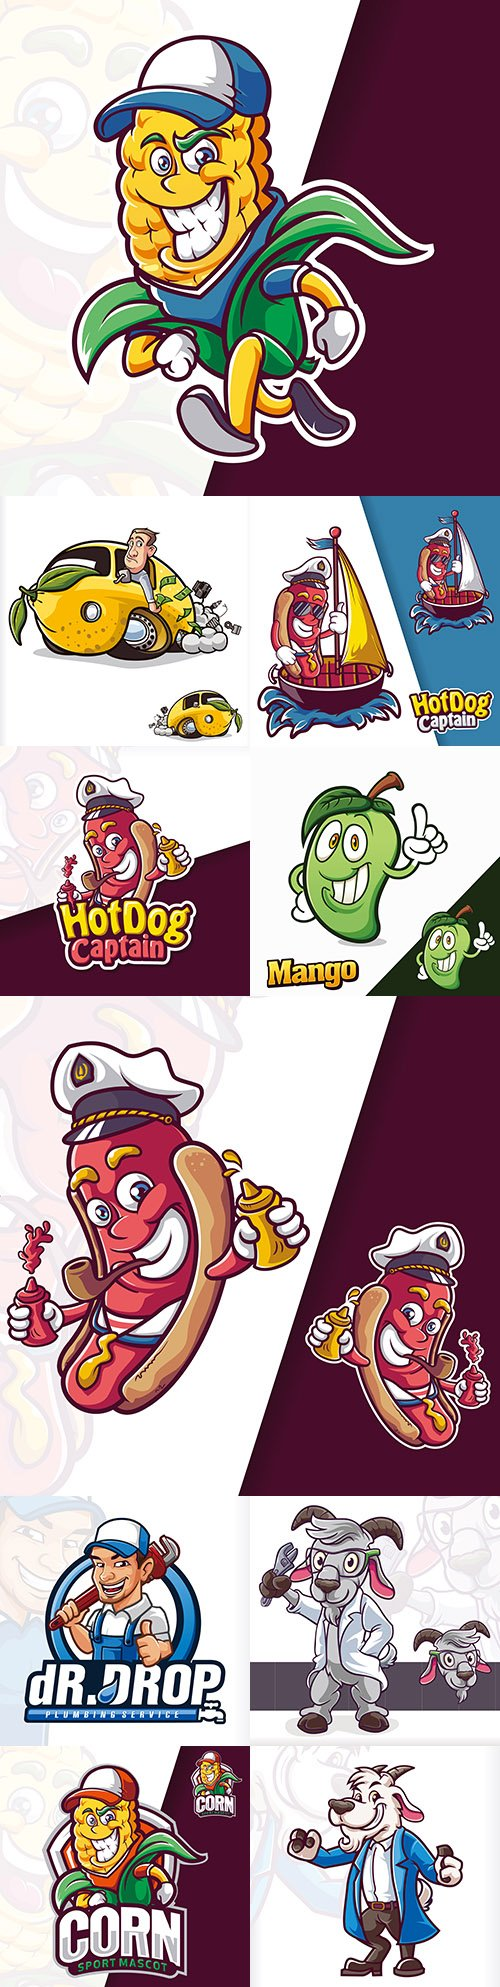 Mascot emblem and brand name logos design 3